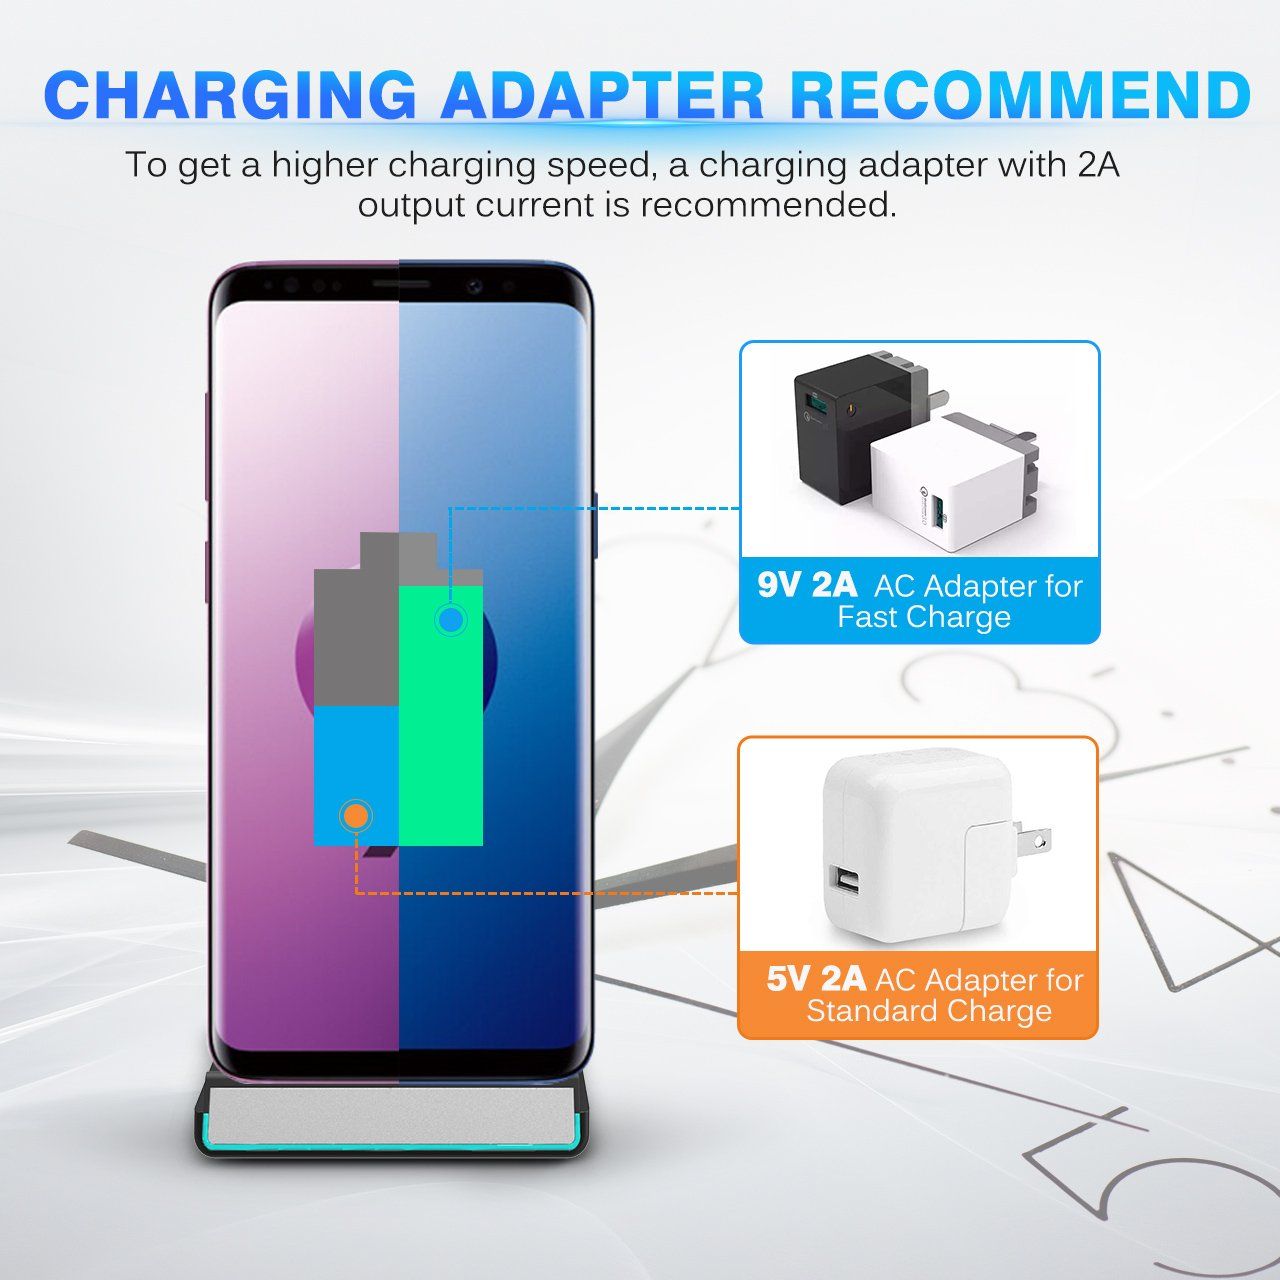 iPhone X Wireless Charger, ELLESYE 10W Fast Wireless Charger Charging Stand for Galaxy S9 S9 Plus Note 8 S8 S8 Plus S7 S7 Edge Note 5 S6 Edge, 5W Standard Charge for iPhone X/8/8 Plus (No AC Adapter) by ELLESYE (Image #6)